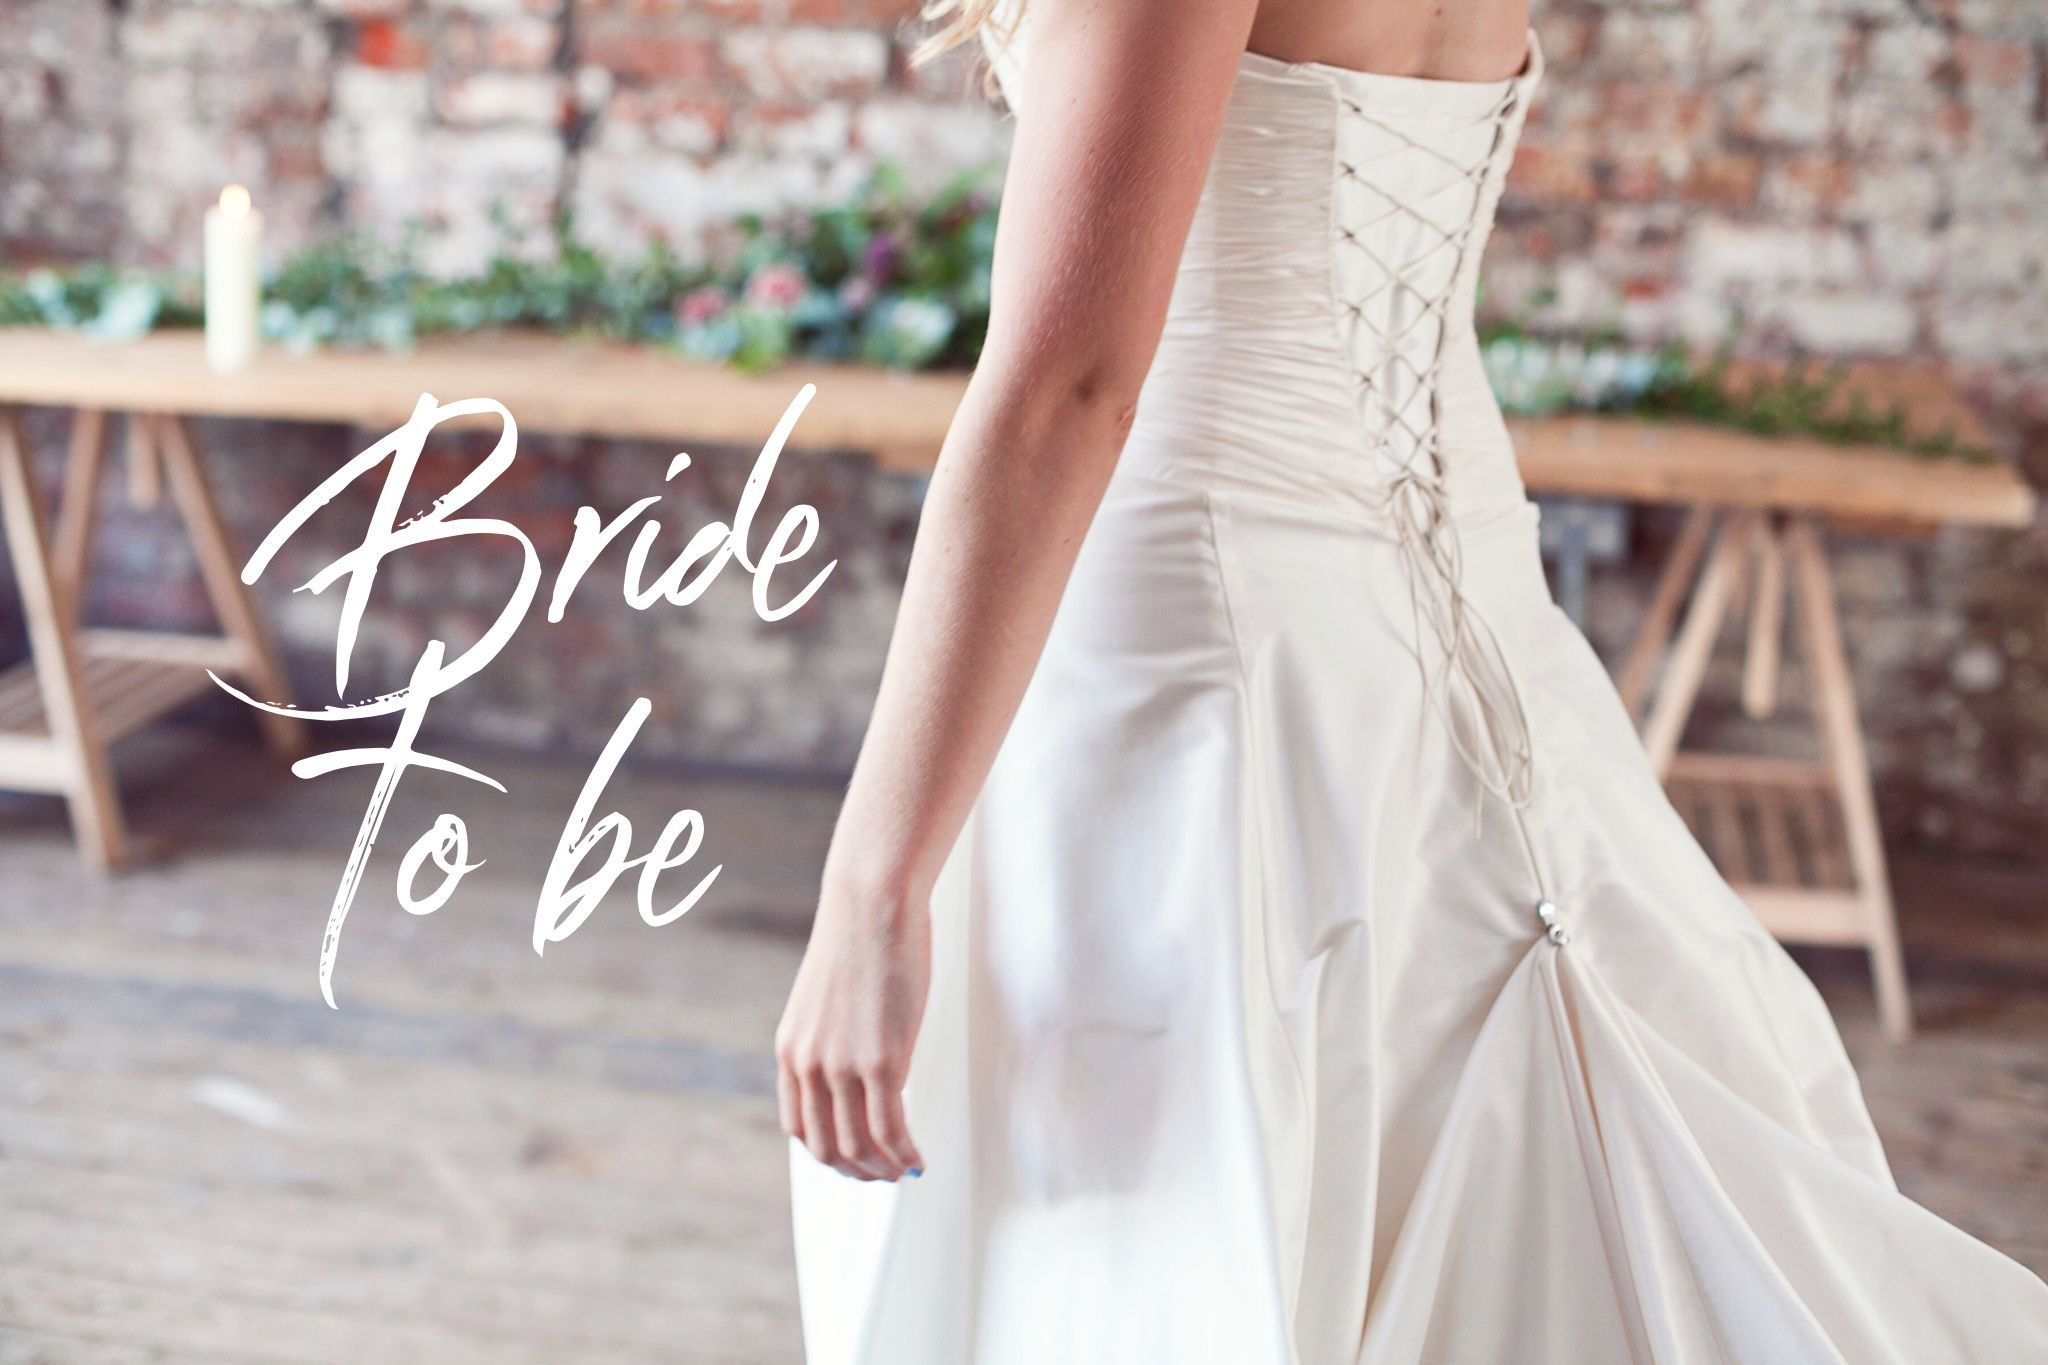 If You Are A Bride To Be And Wondering How To Hook Up Your Wedding Dress Train Then A Trainloop Can Prov Wedding Dress Train Amazing Wedding Dress Dress Train